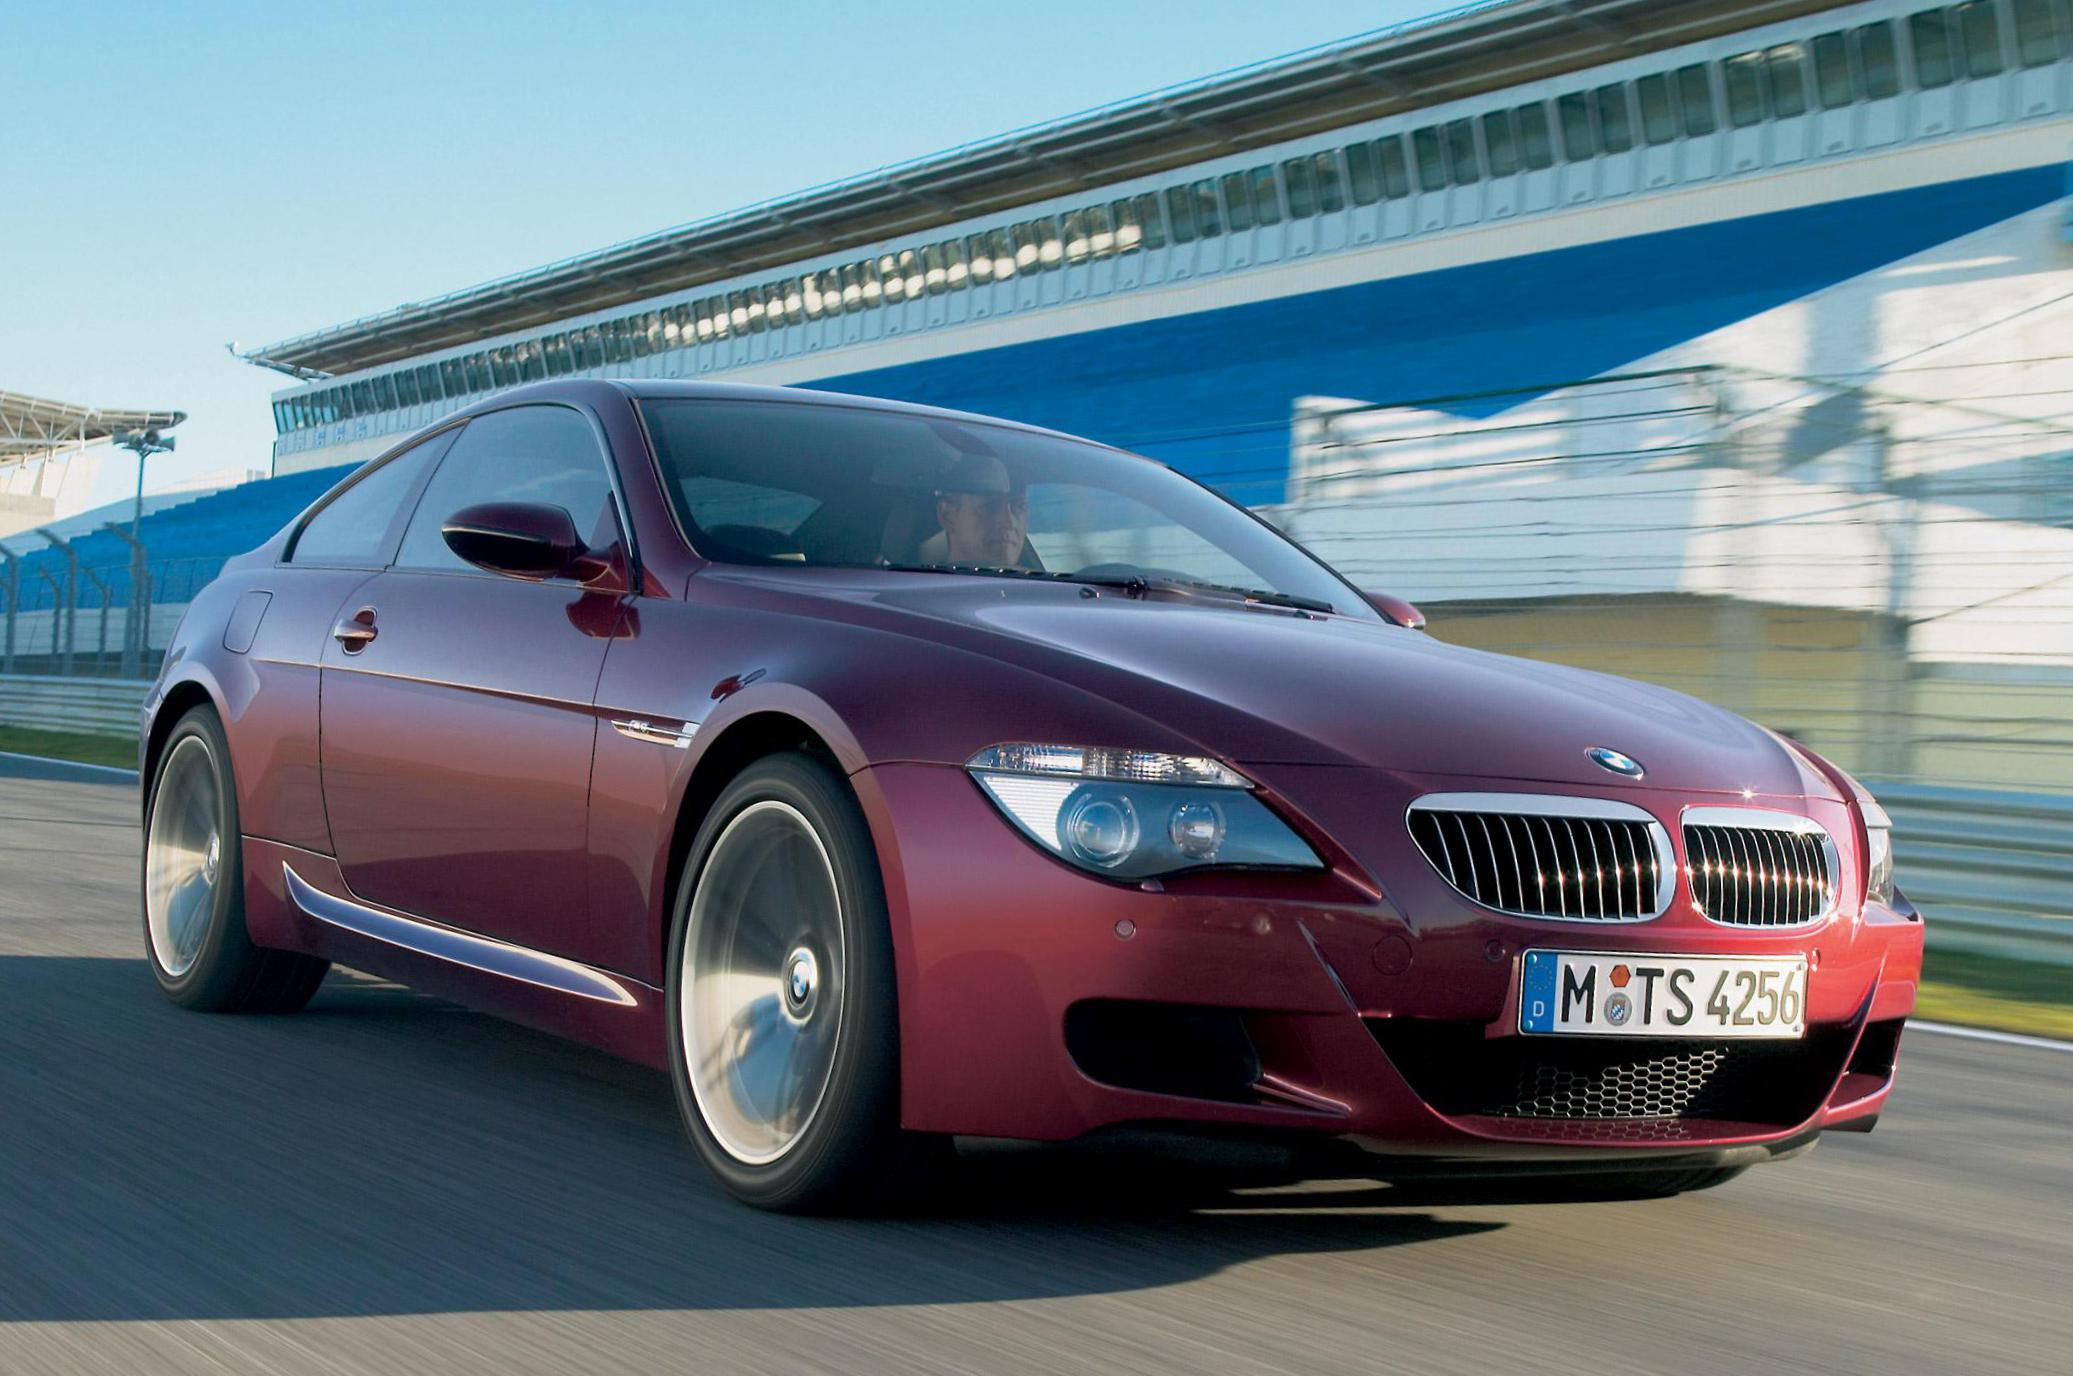 BMW M6 Coupe (E63) Specifications 2010